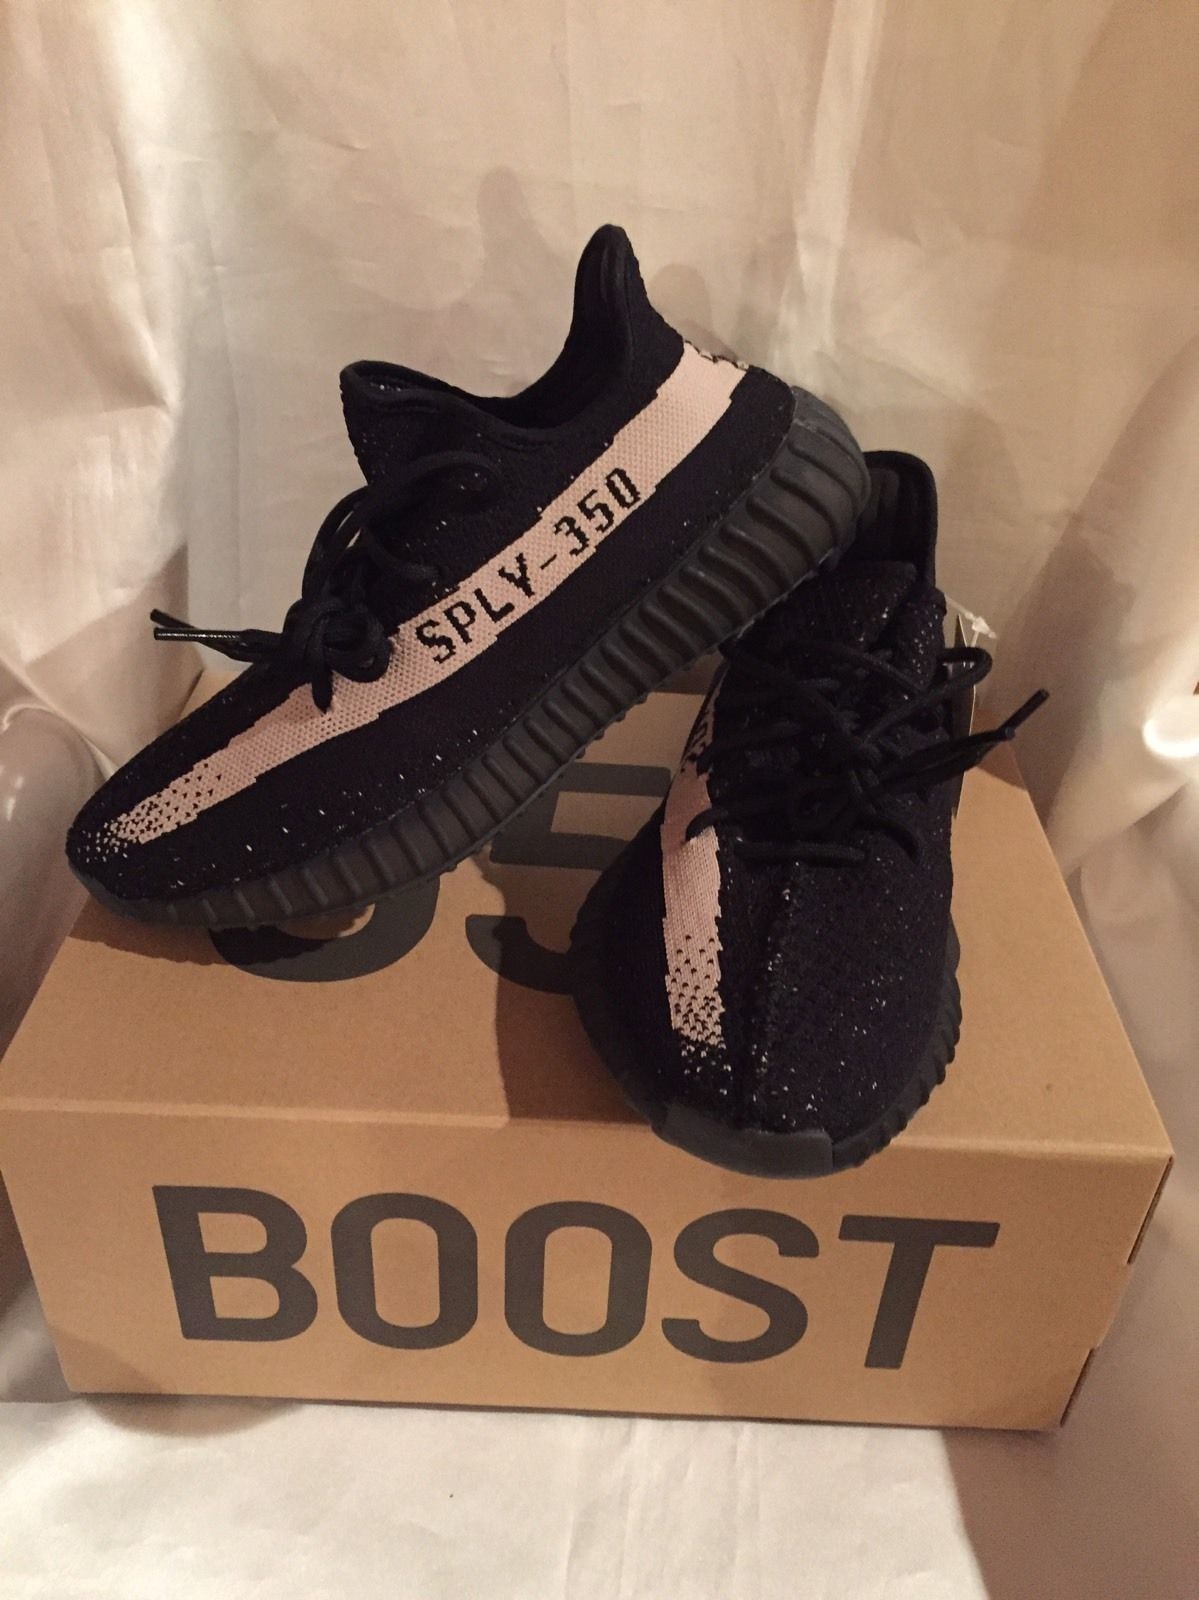 Adidas Yeezy Boost 350 V2 Core Black White Sz 9 US YZY Kanye In Hand